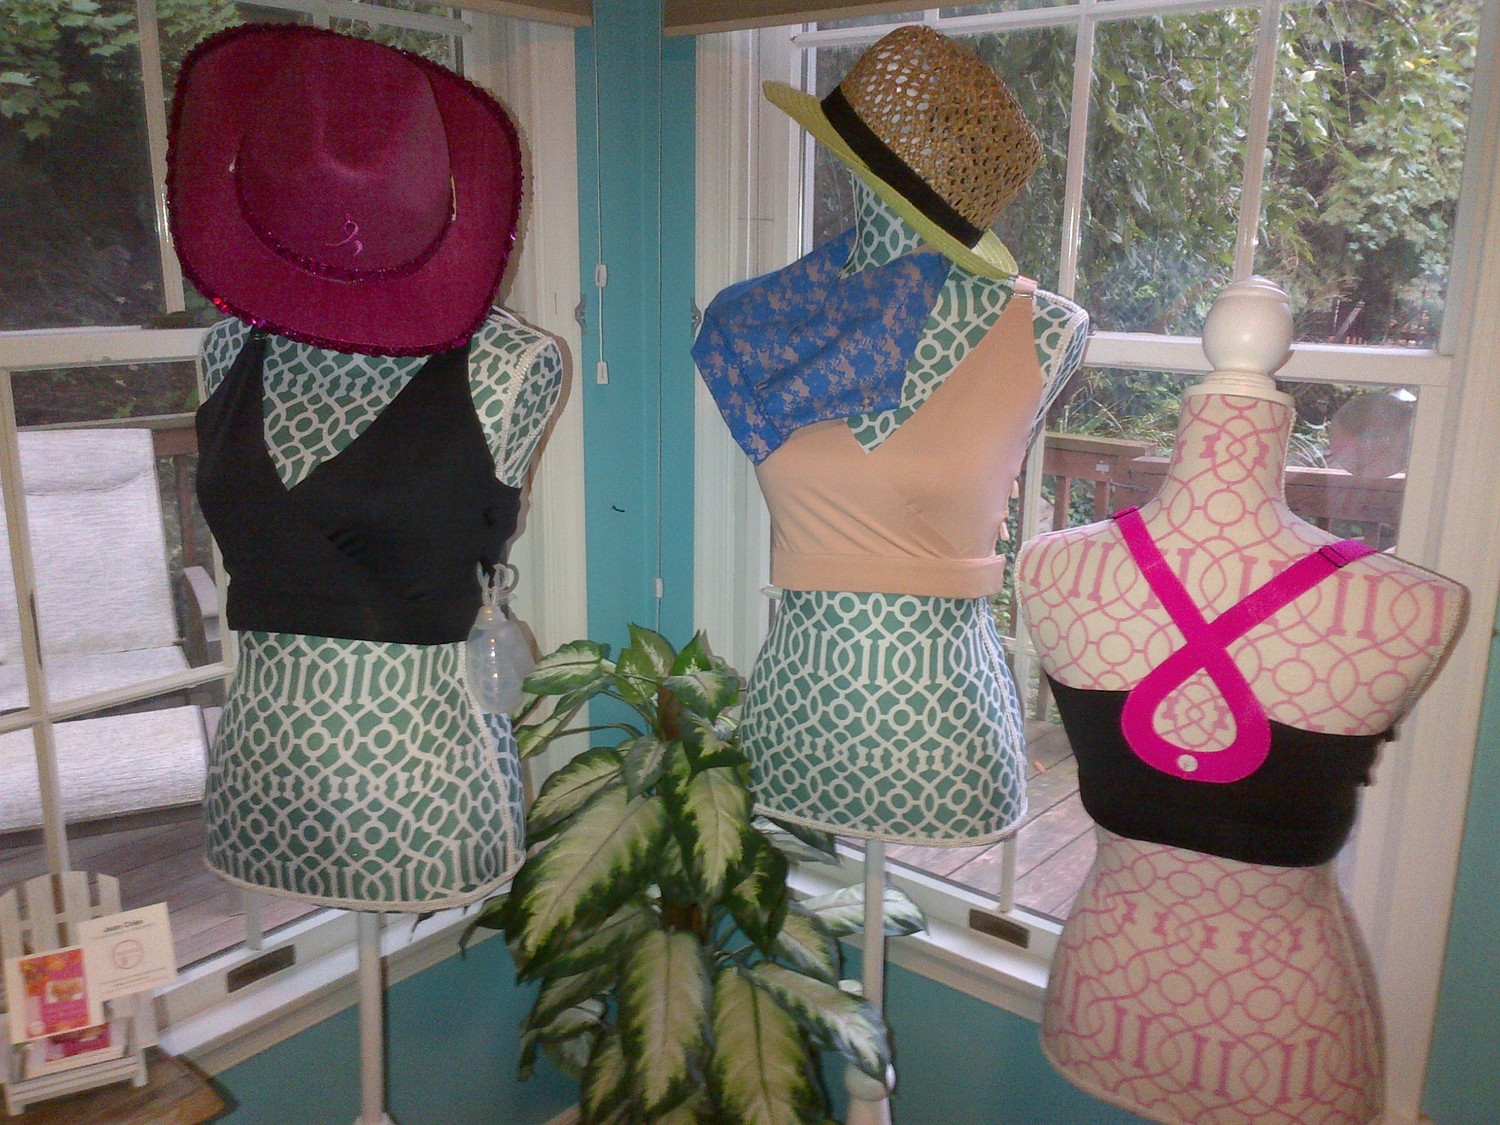 2013 Crisscross prototypes - The Nina Bras